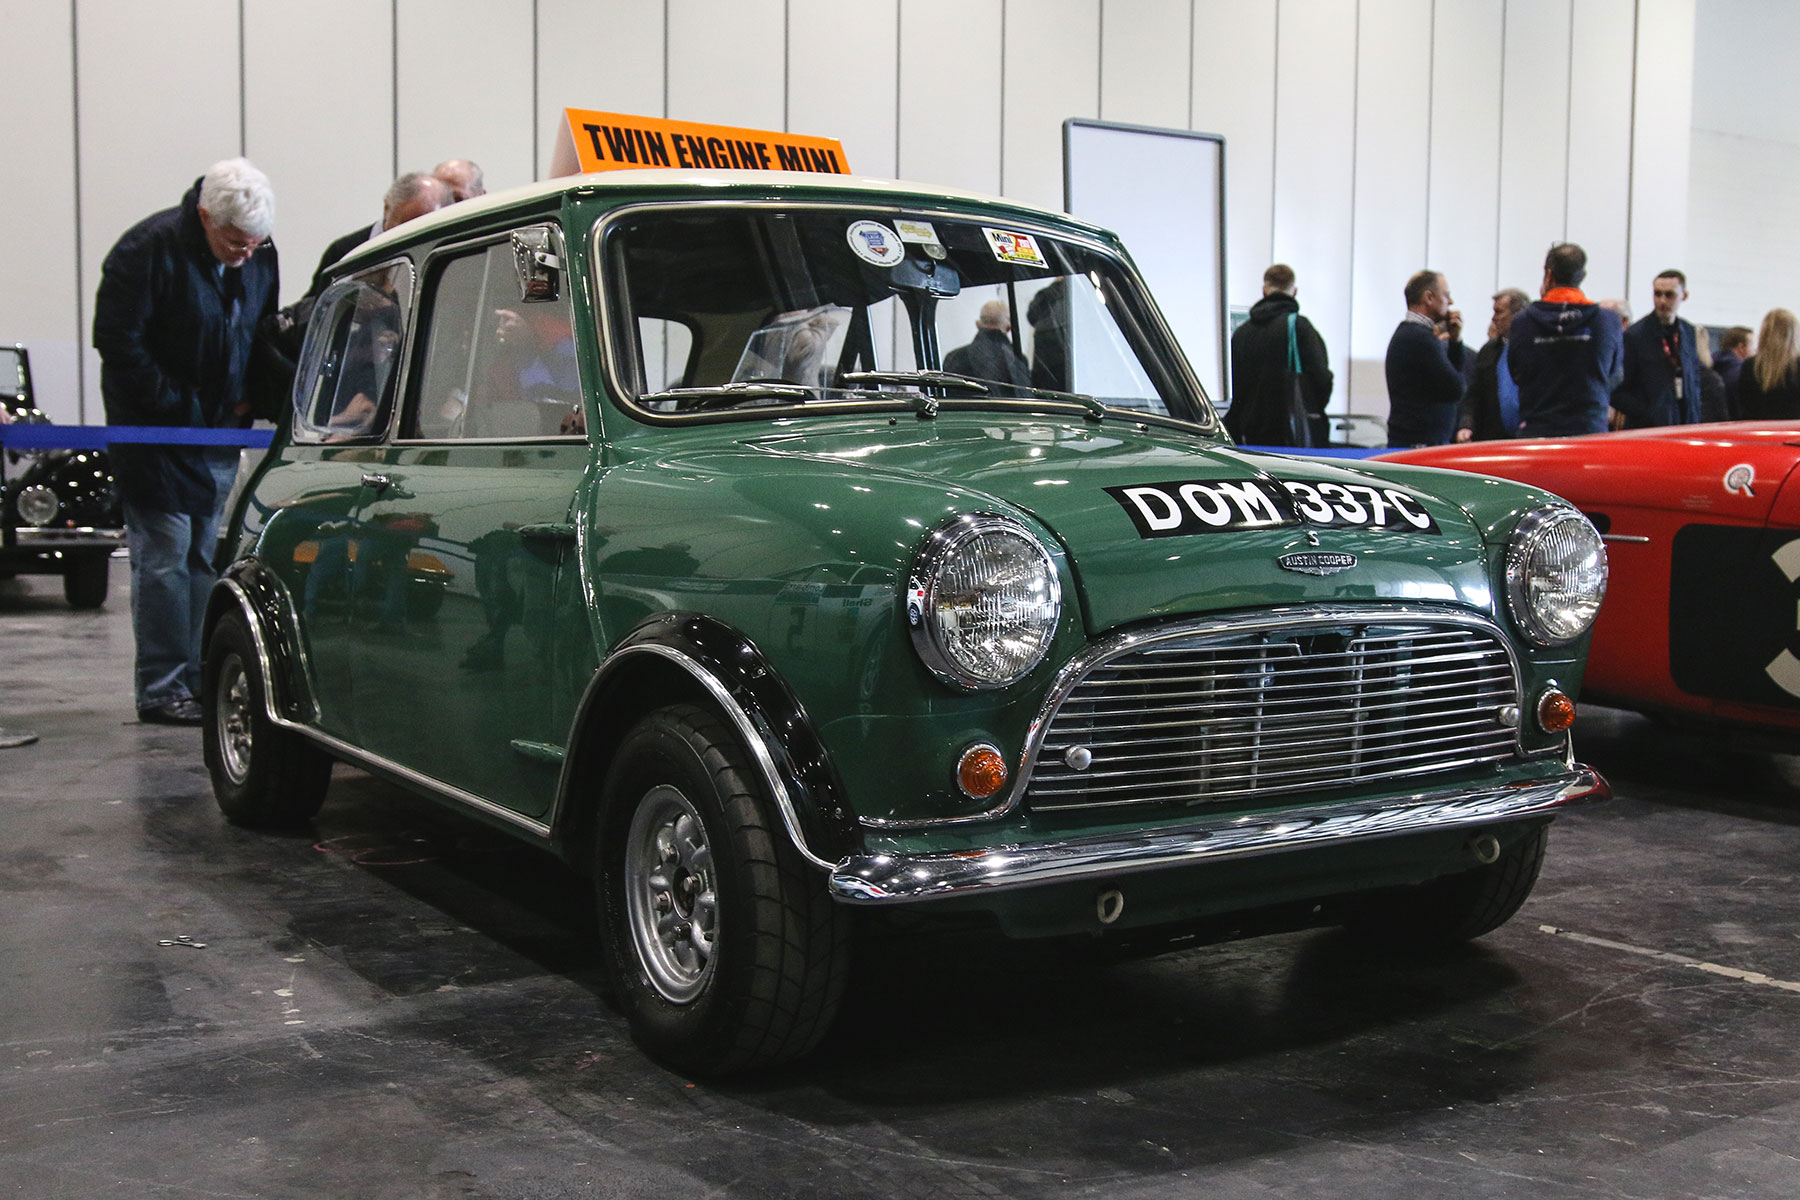 This twin-engined Mini is an early example of a 4x4 rally car ...